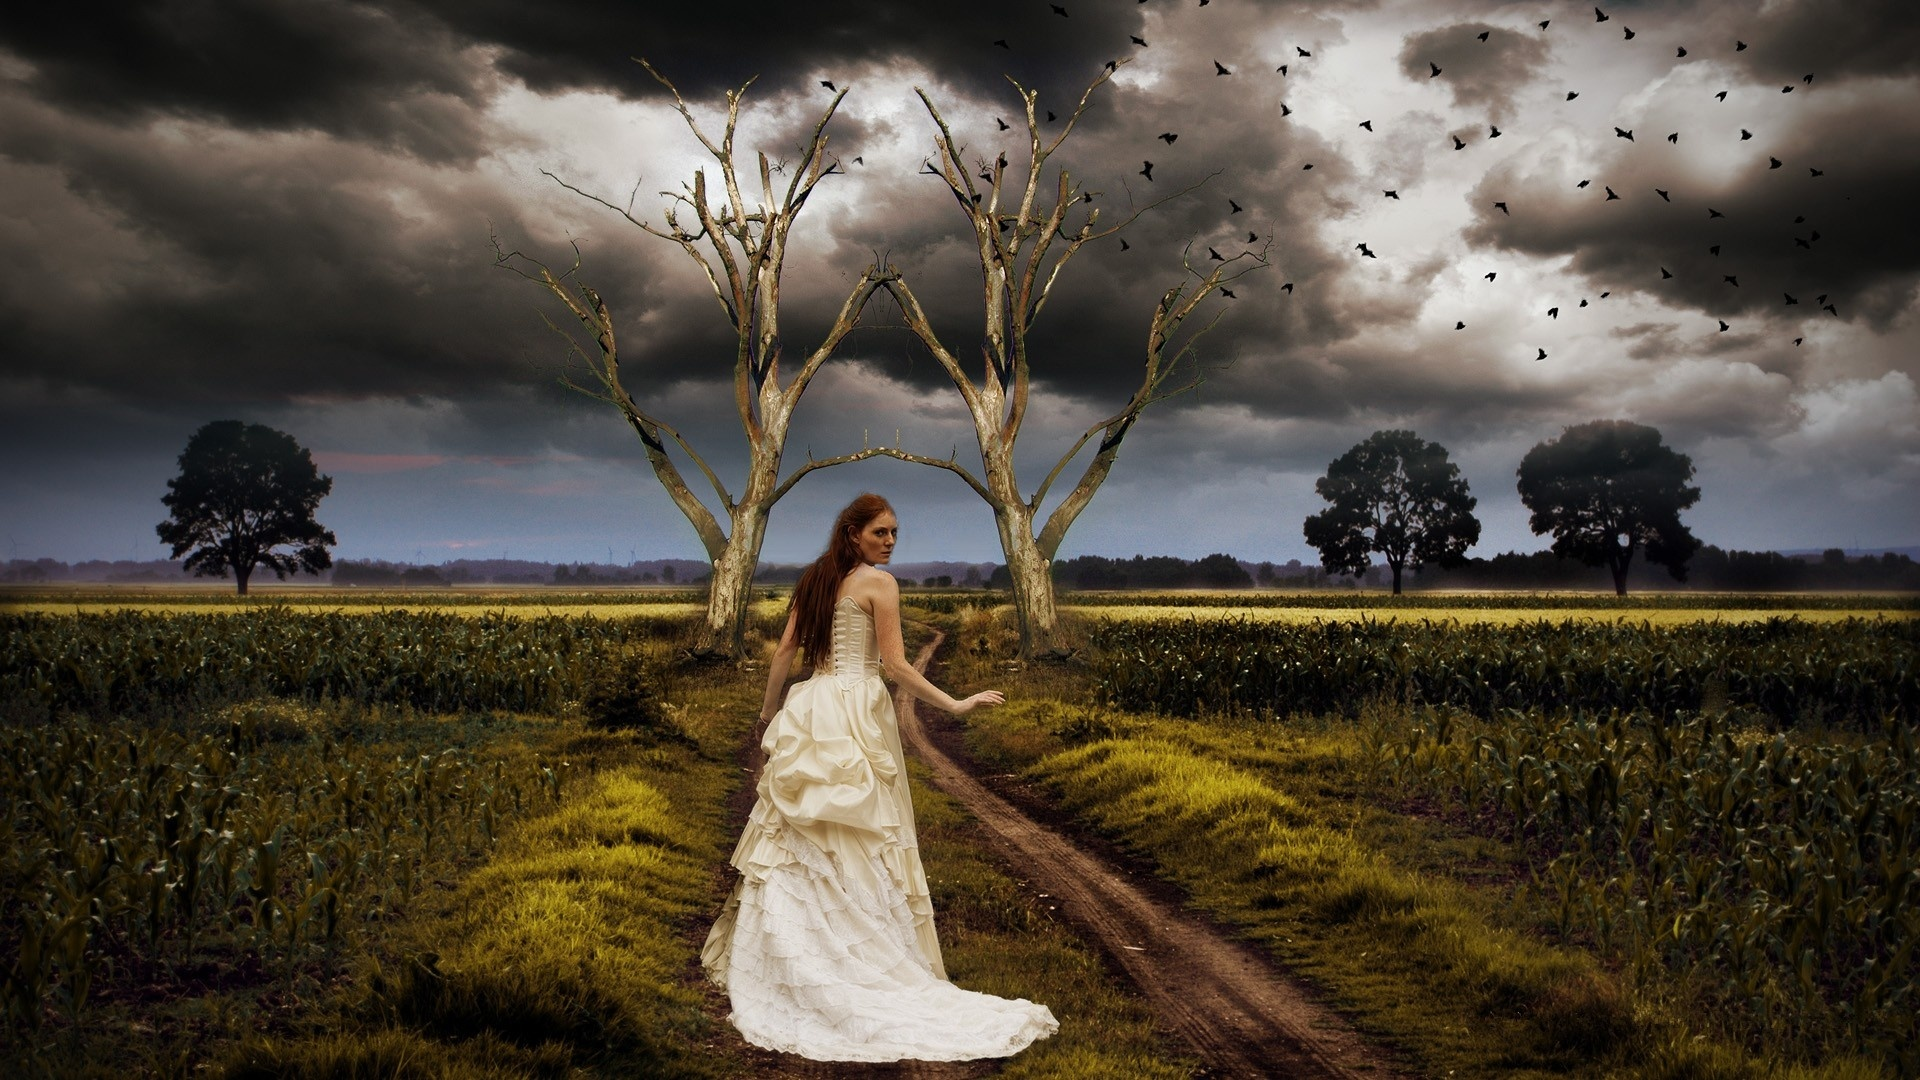 Trance Girl Wallpaper Fantastic Landscape Road Girl Clouds Nature Gothic Redhead